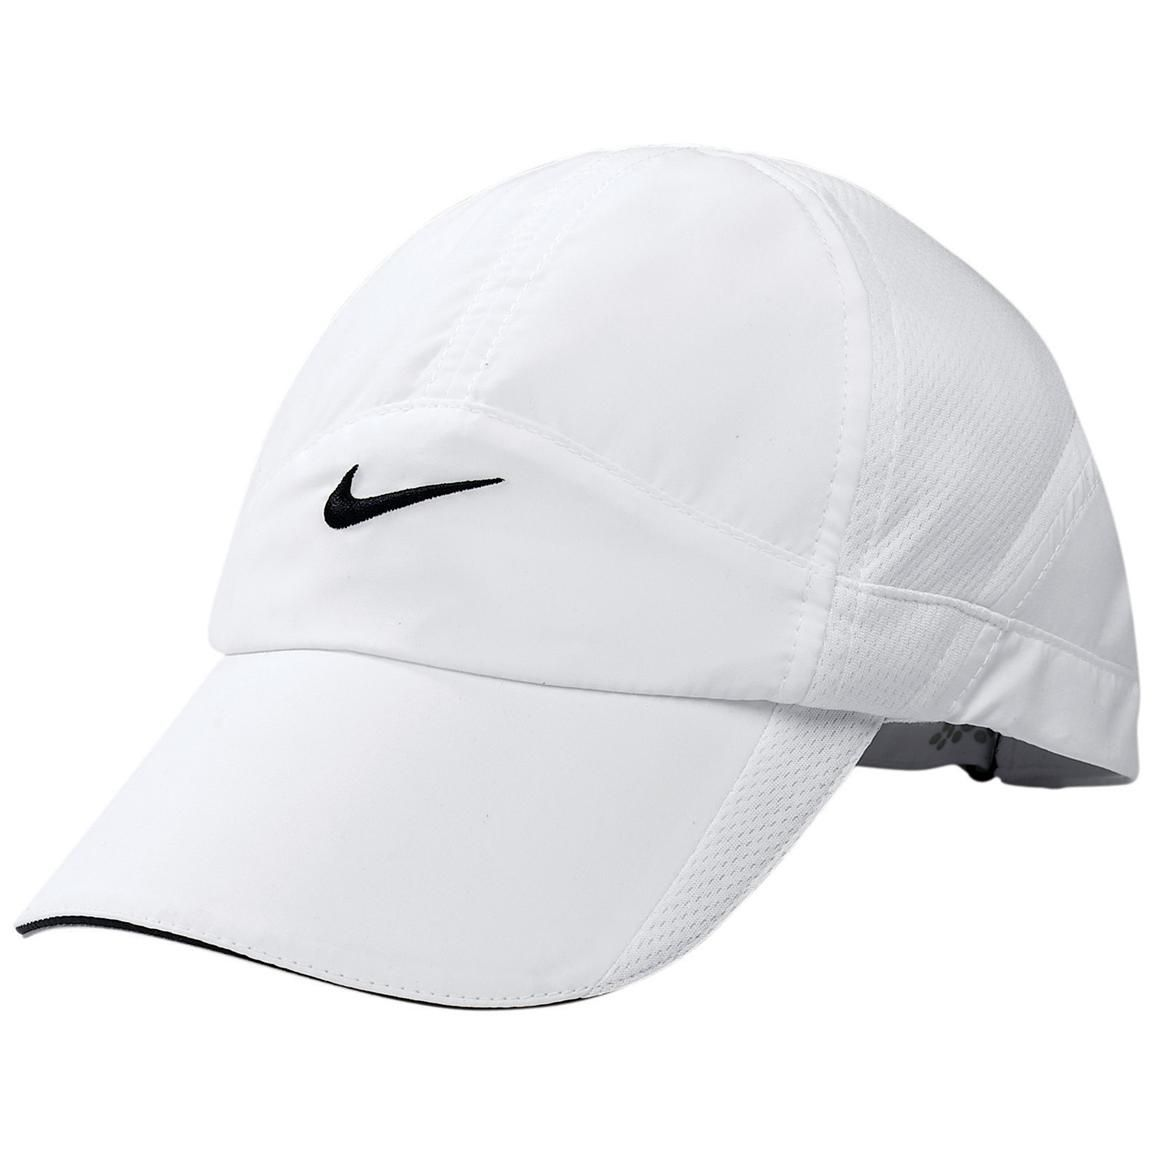 359226a99ab10 Nike Hats for Women | Women's Nike® Feather Light Cap White | Hats ...